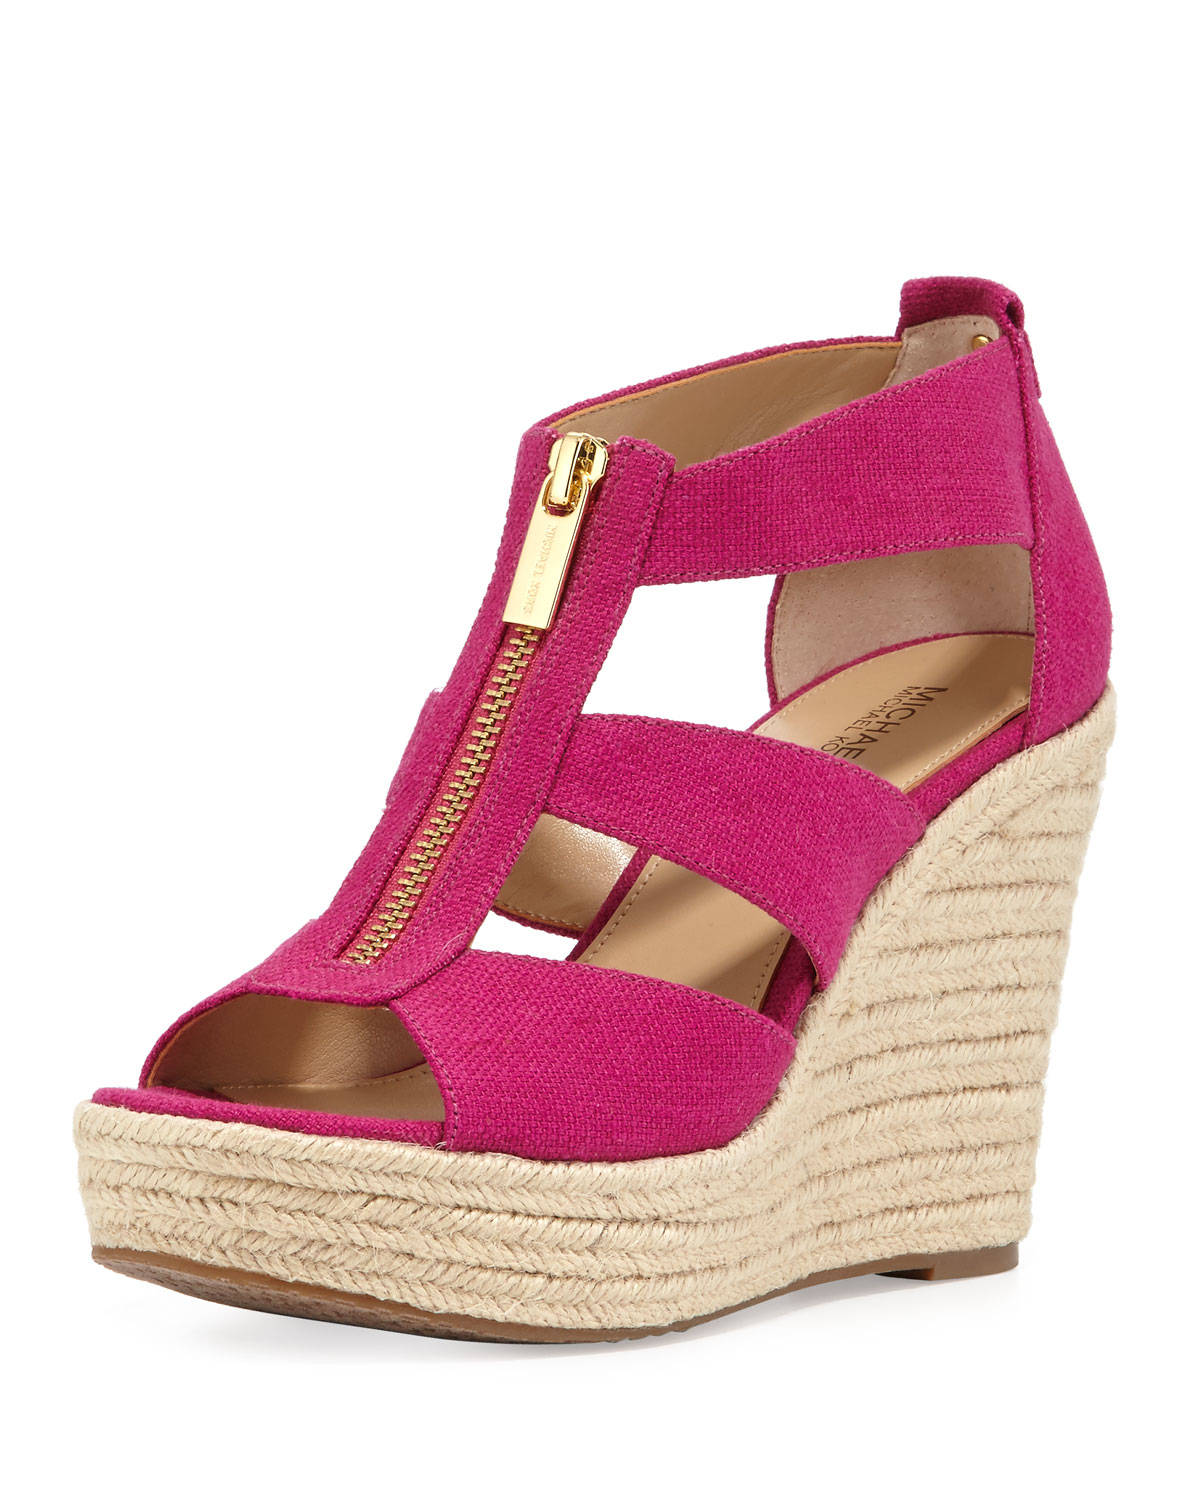 3b35e0a14d2 Lyst - MICHAEL Michael Kors Damita Zip-Front Canvas Wedges in Pink